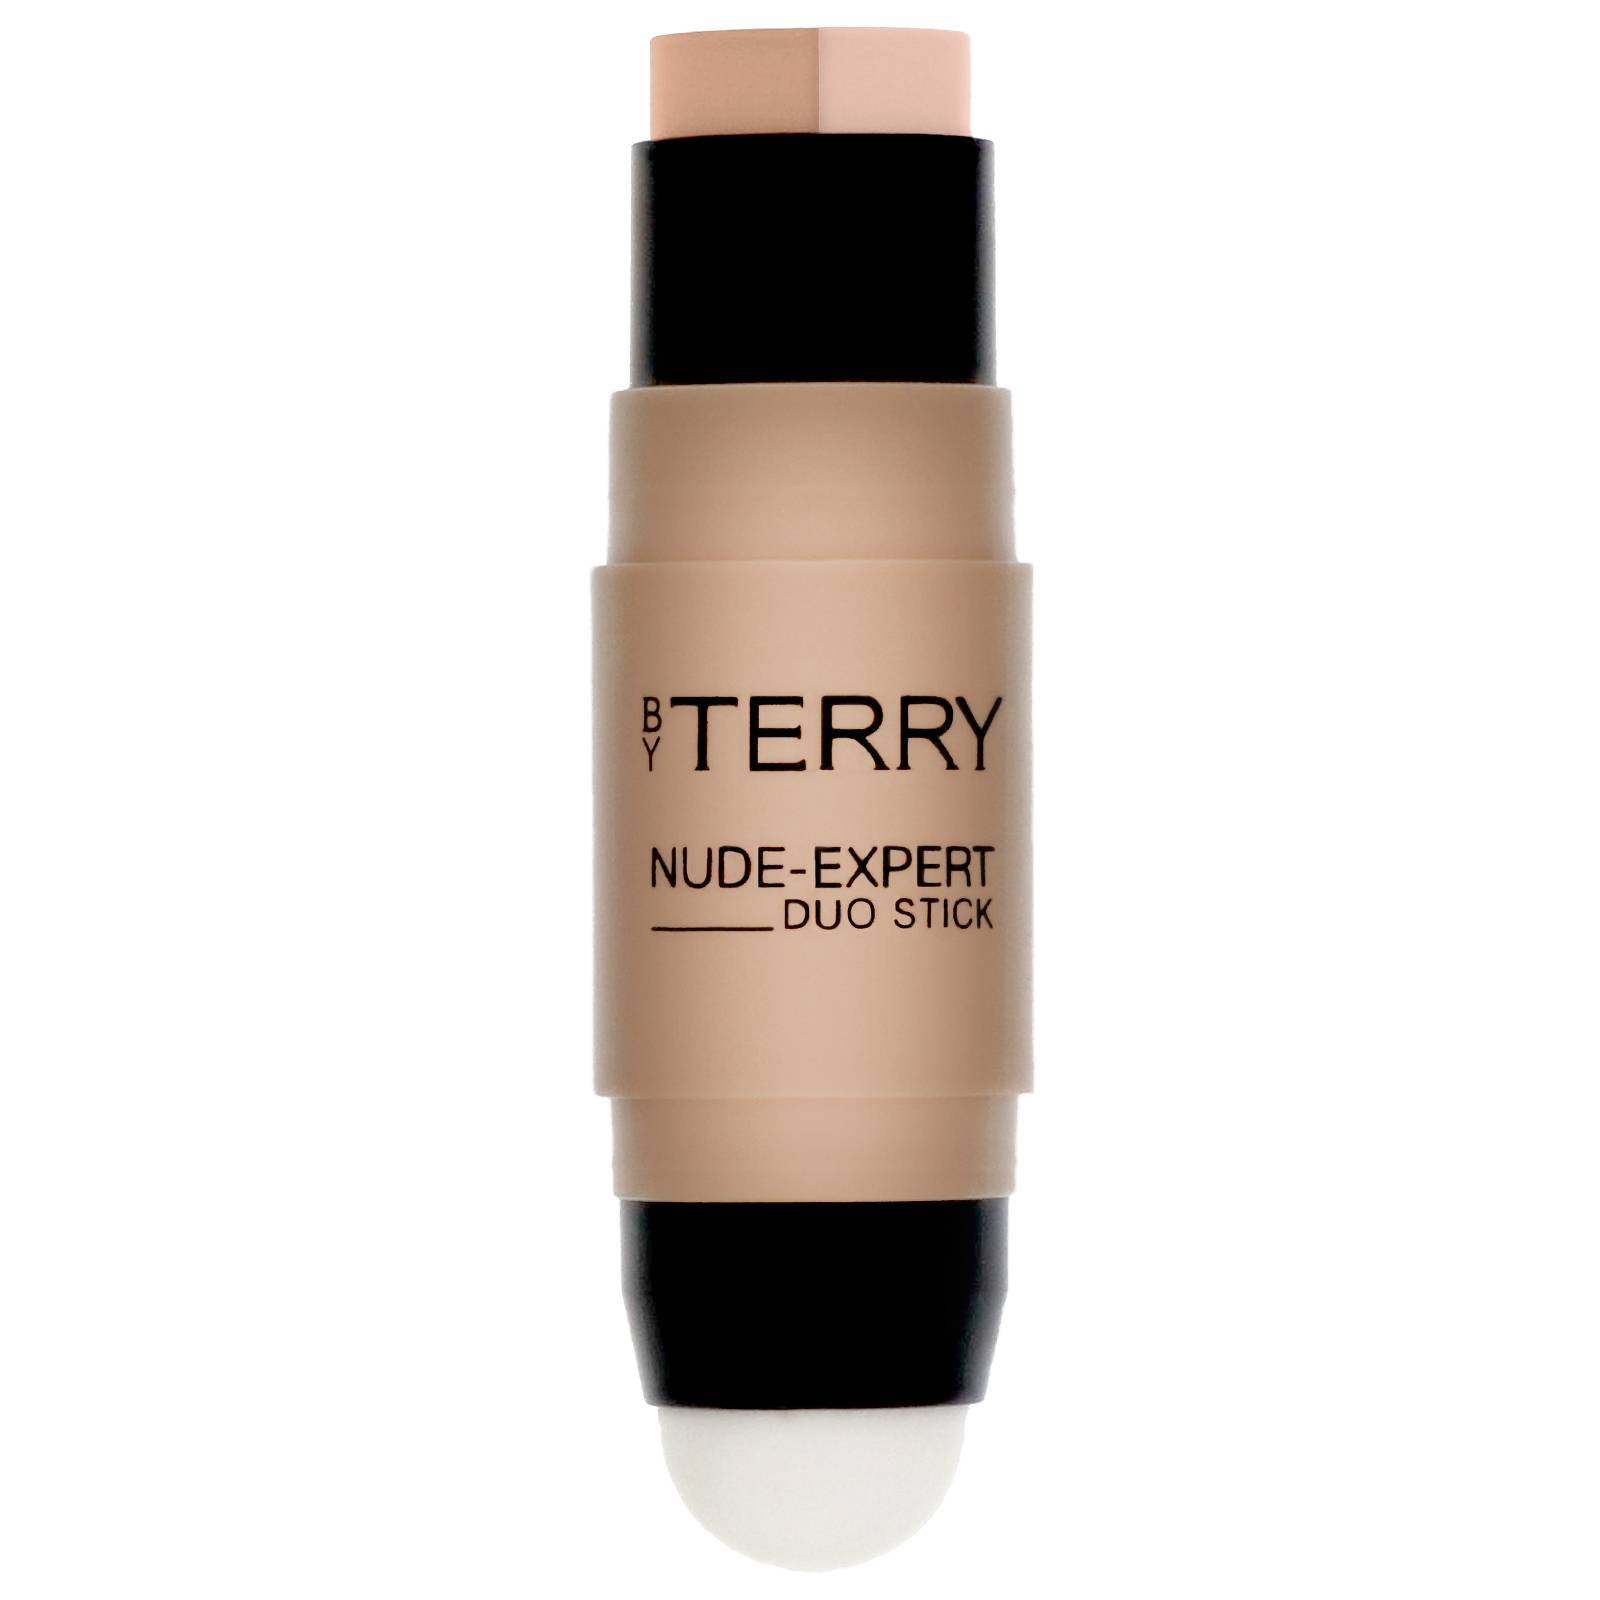 By Terry Nude-Expert Duo Stick 7 g di 8,5 Beige vaniglia